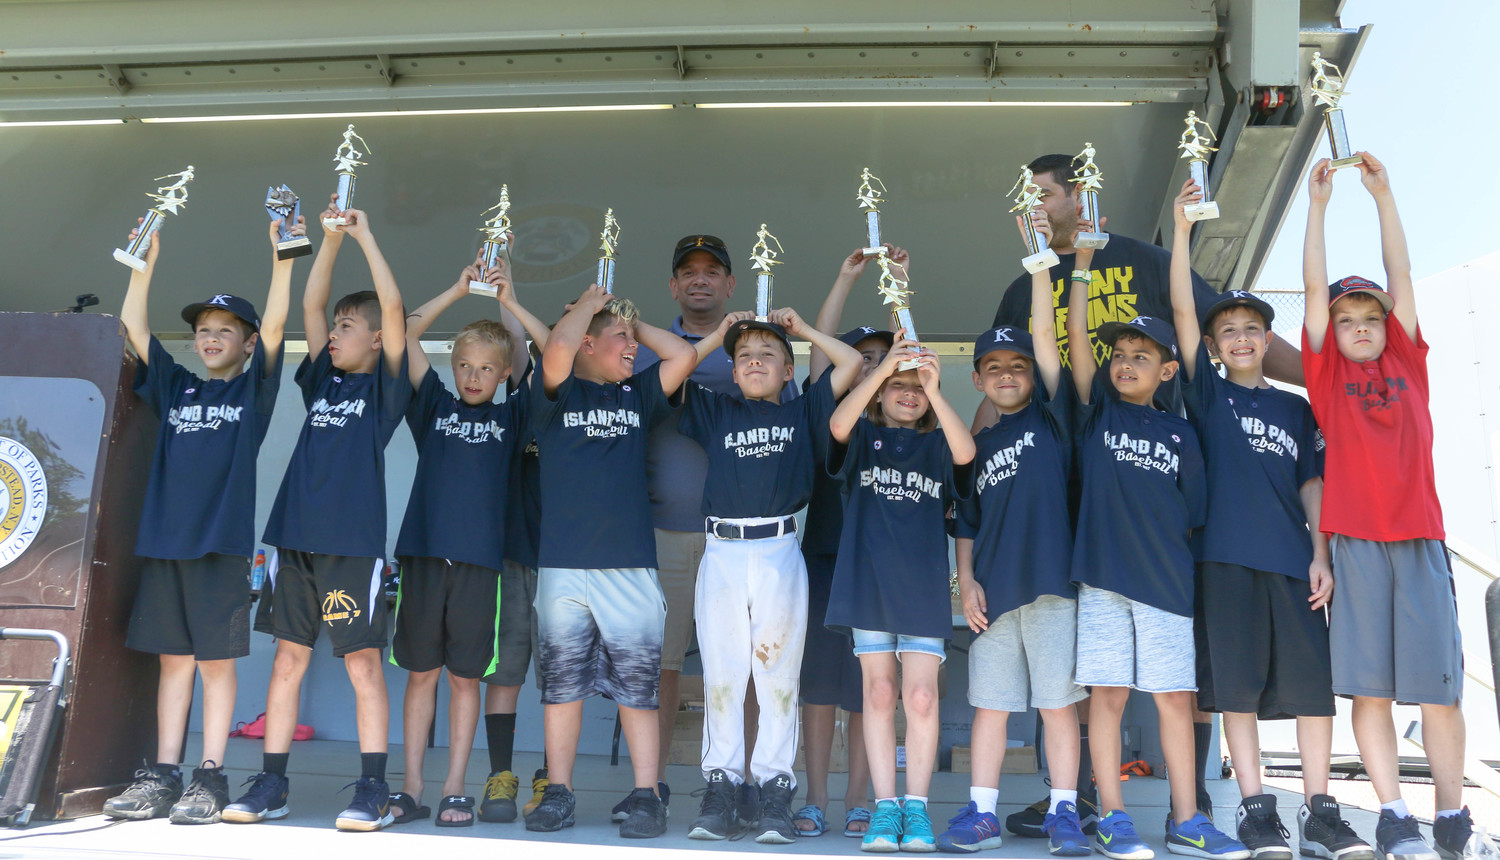 The Island Park Knights raised their trophies high in celebration.